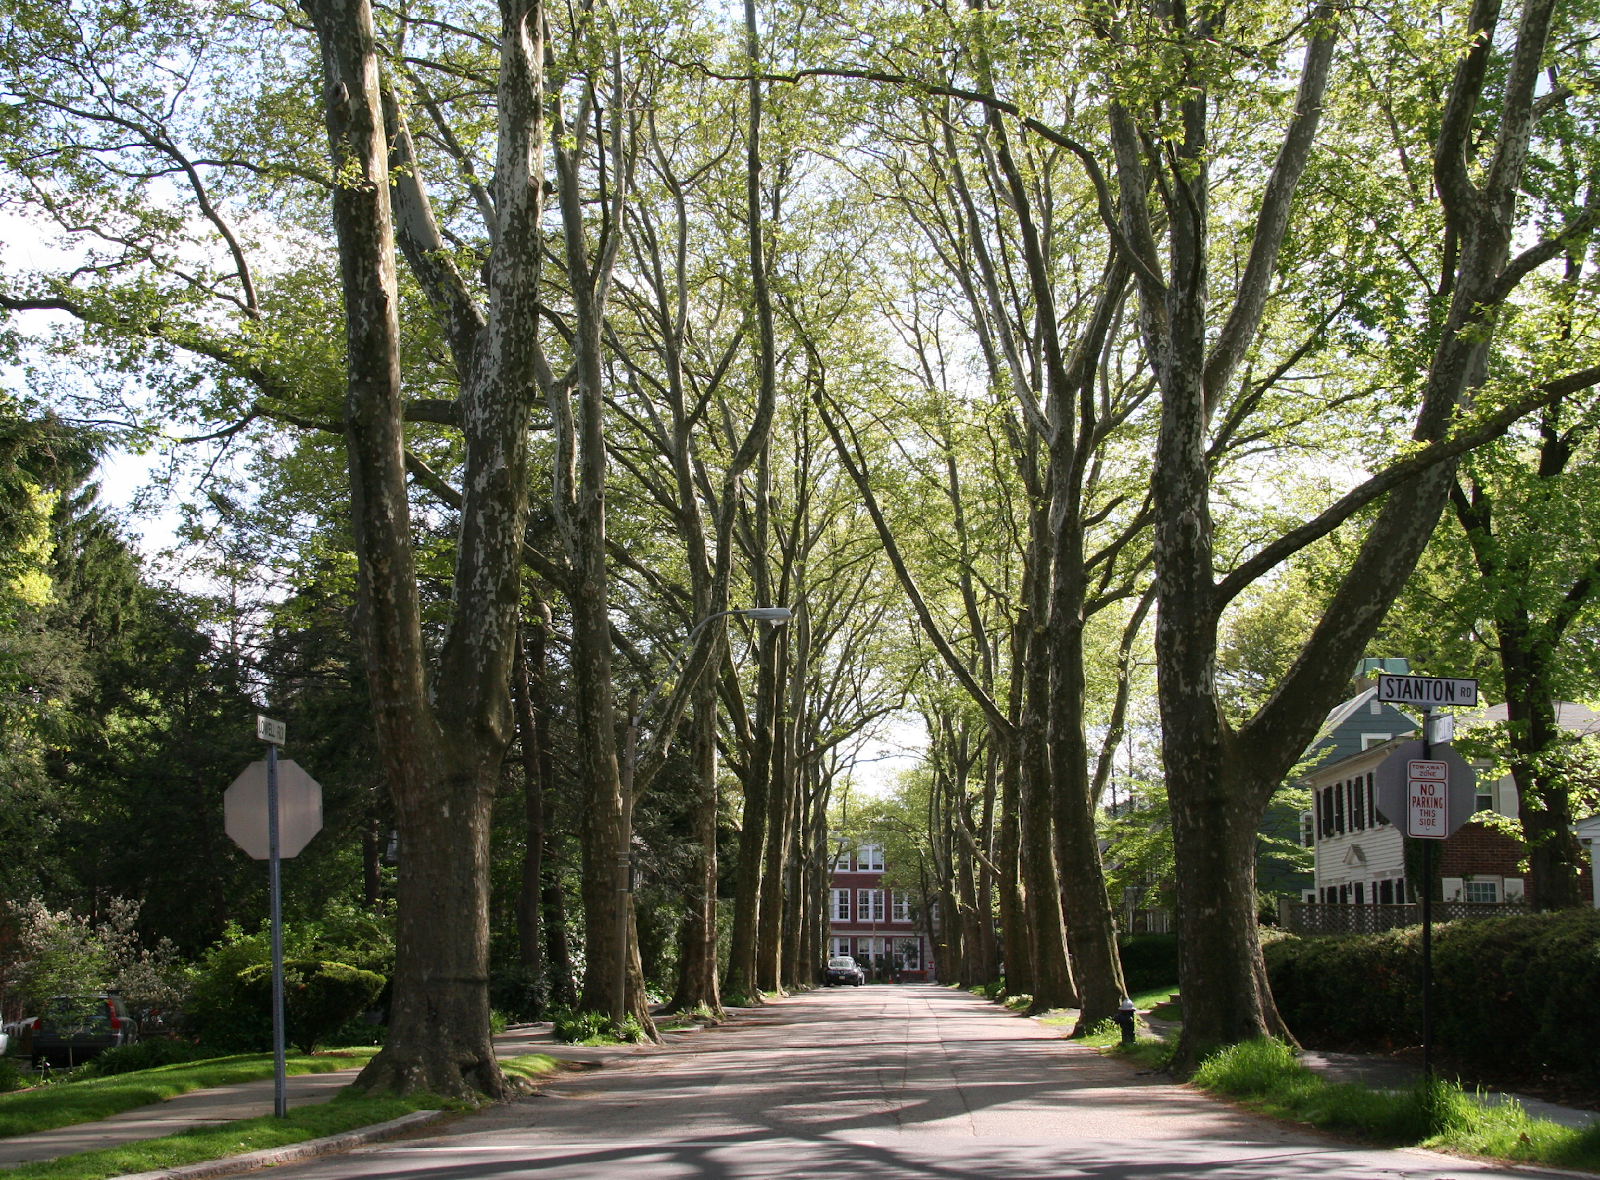 Large trees lining Lowell Road